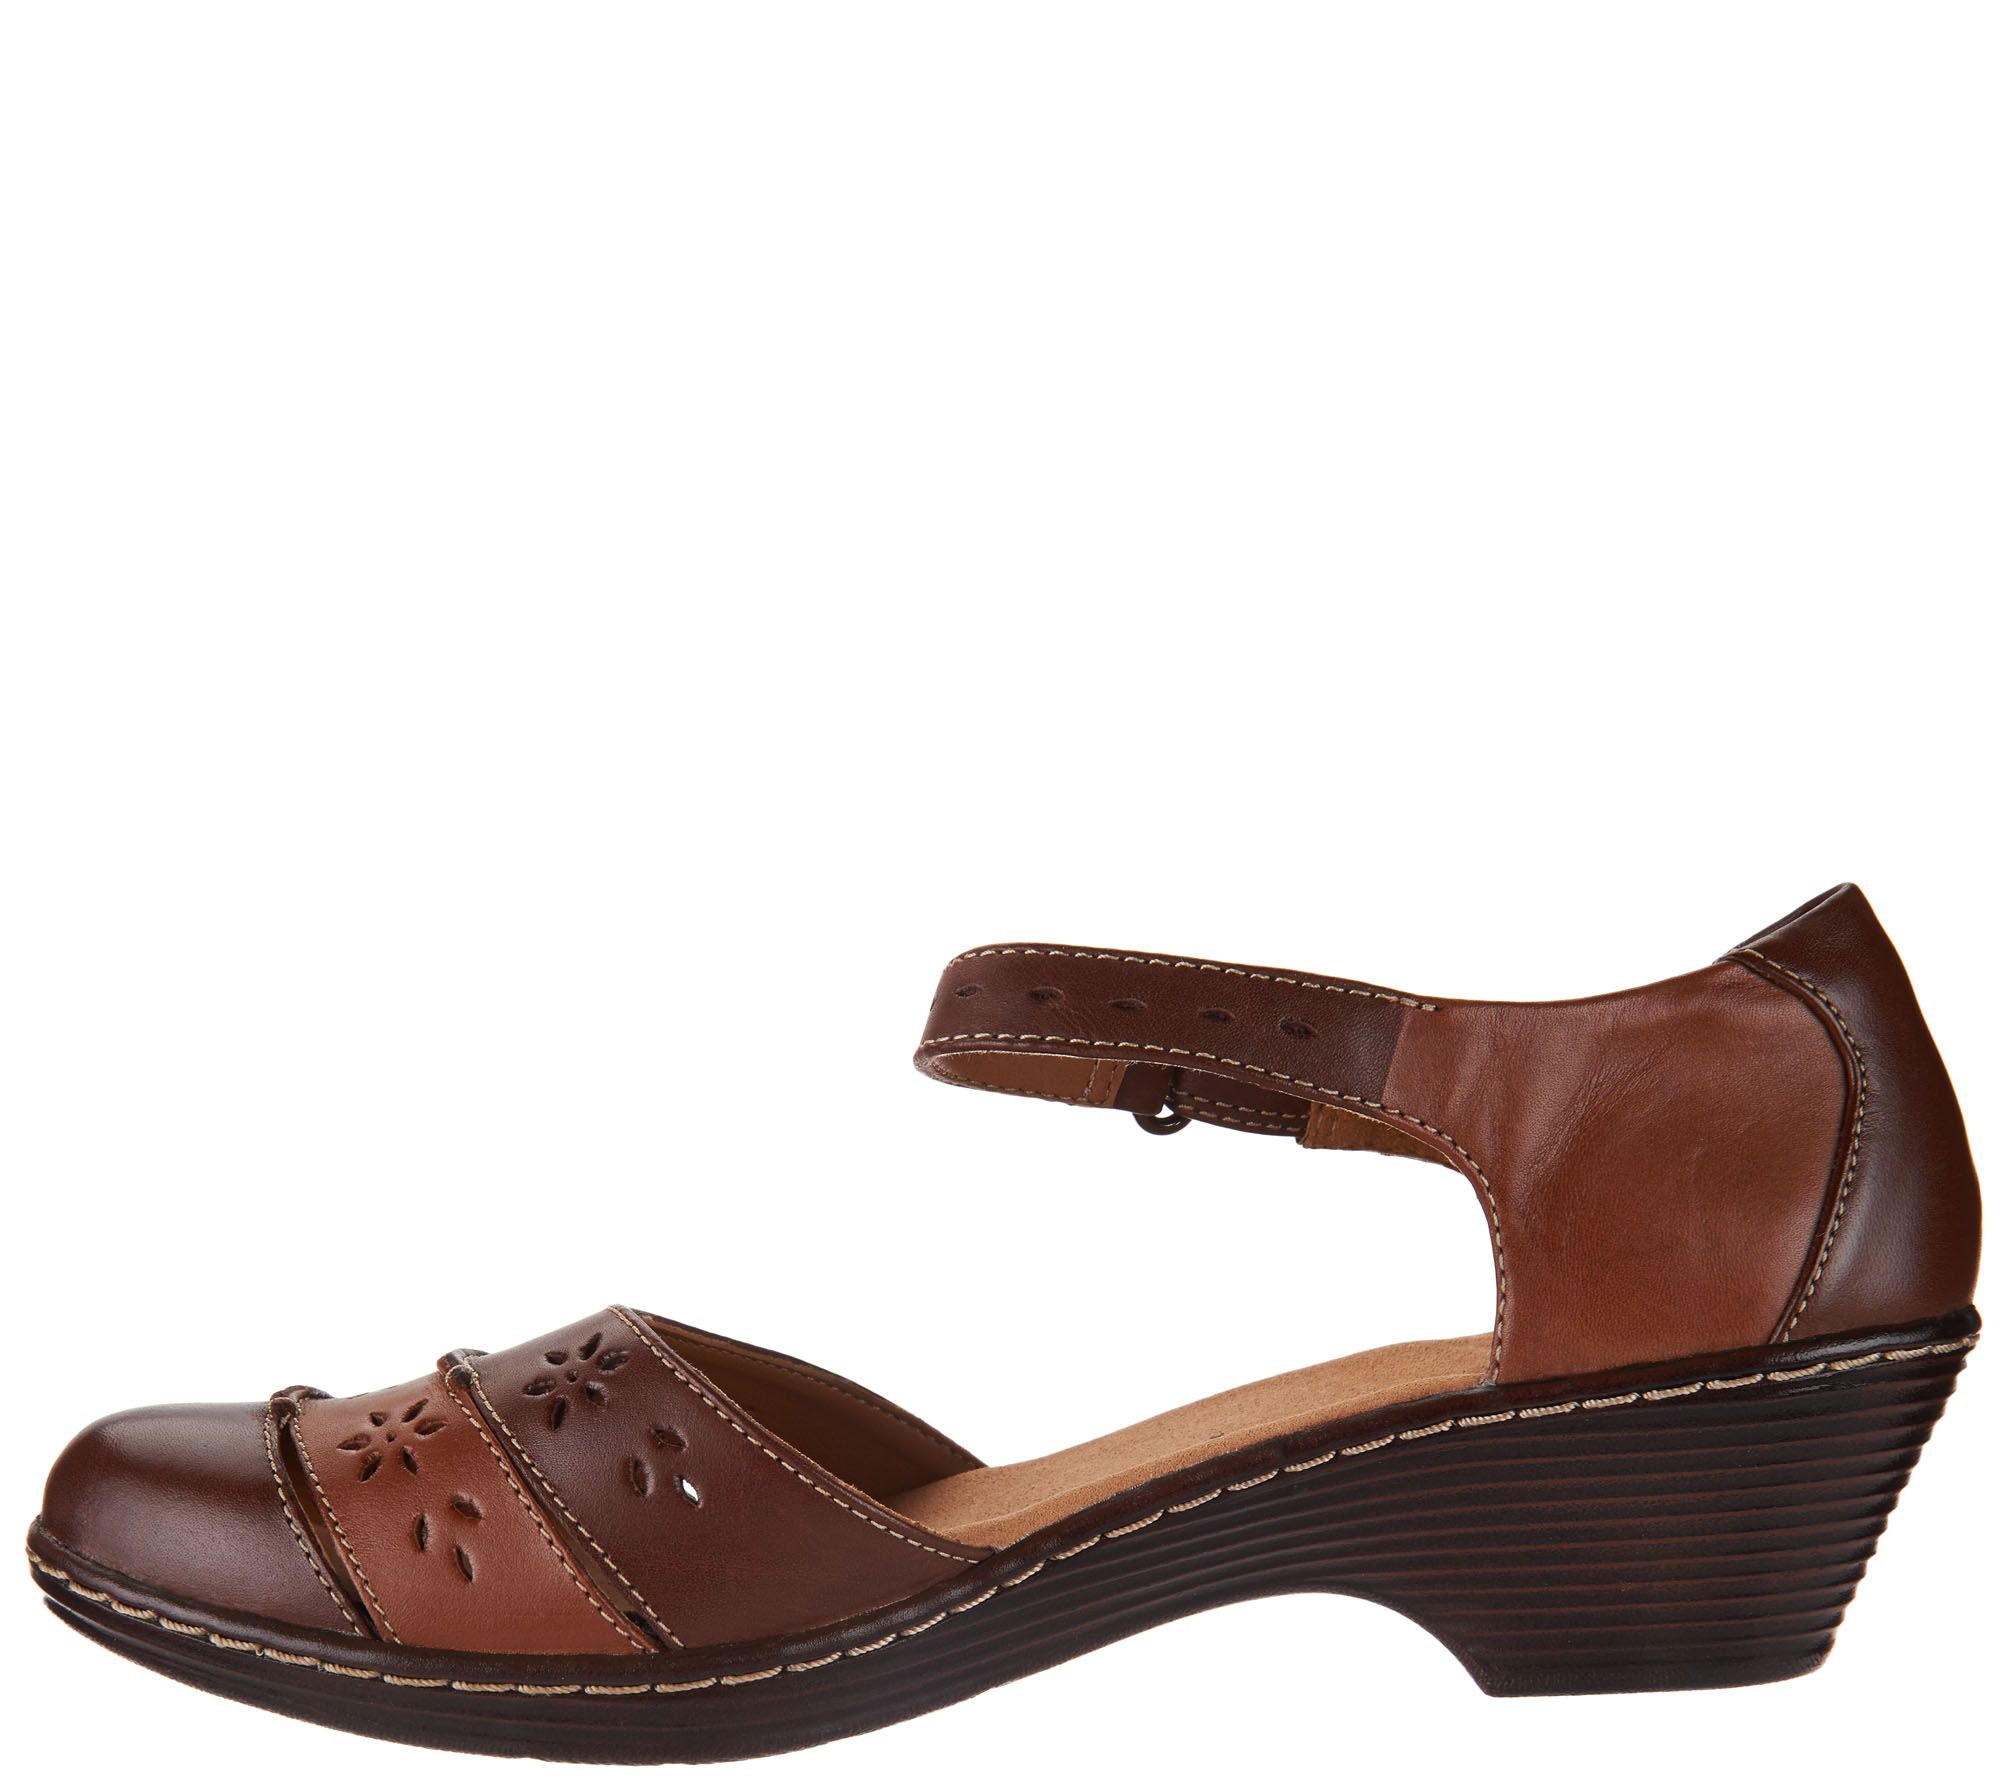 66bc409fa0b47 Clarks Leather Closed Toe Sandals - Wendy Leehi - Page 1 — QVC.com